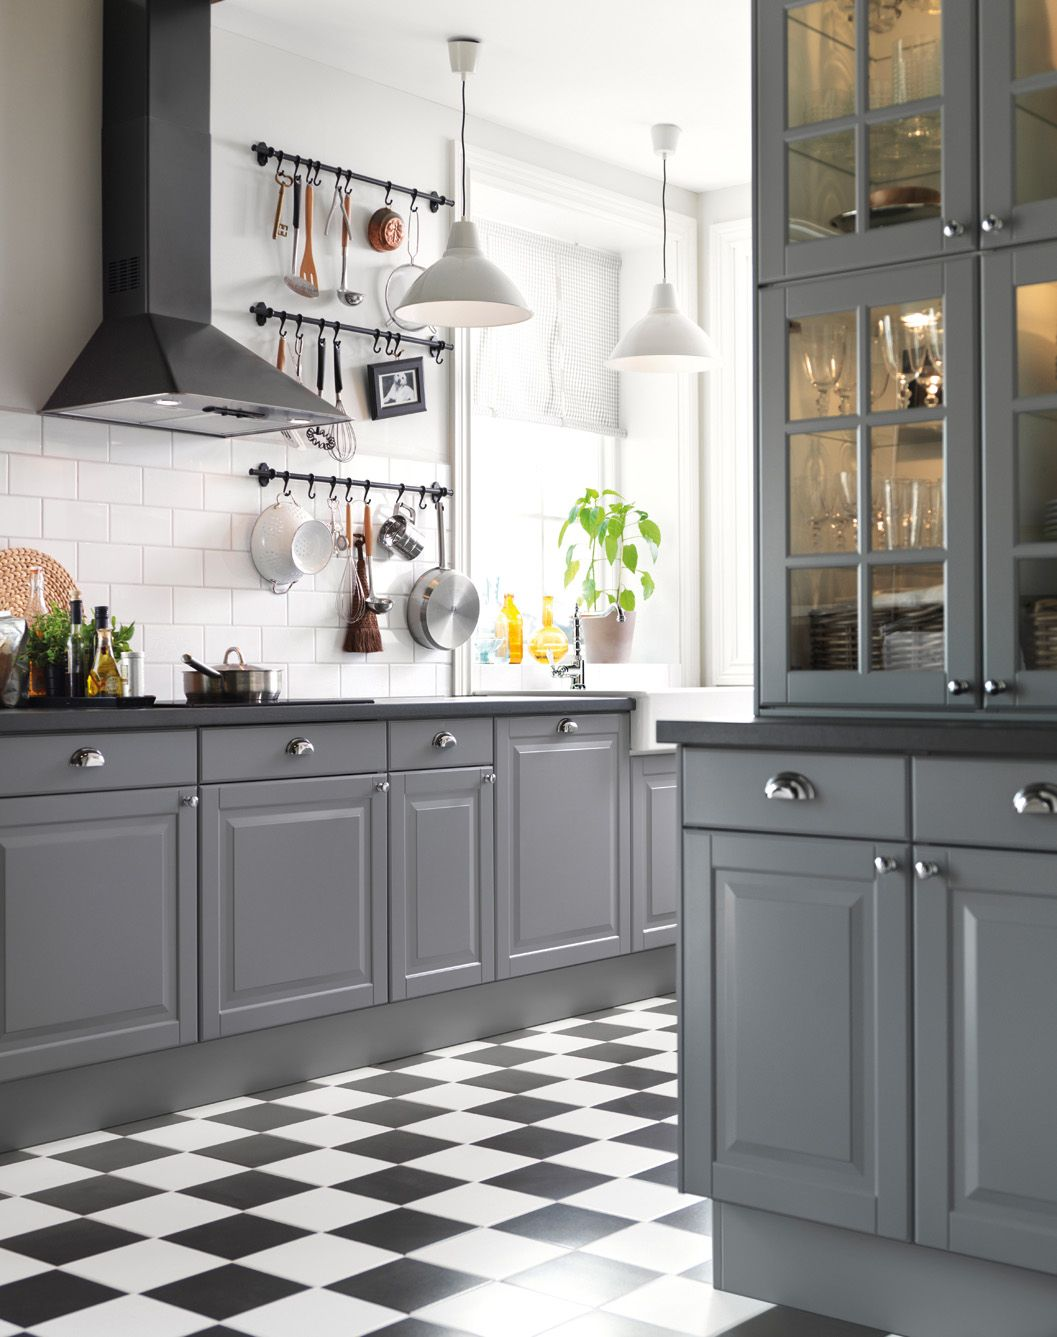 Kitchen Design Paint Colors Gray Cabinetry Grey Kitchen Designs Dark Grey Kitchen Cabinets White Kitchen Floor